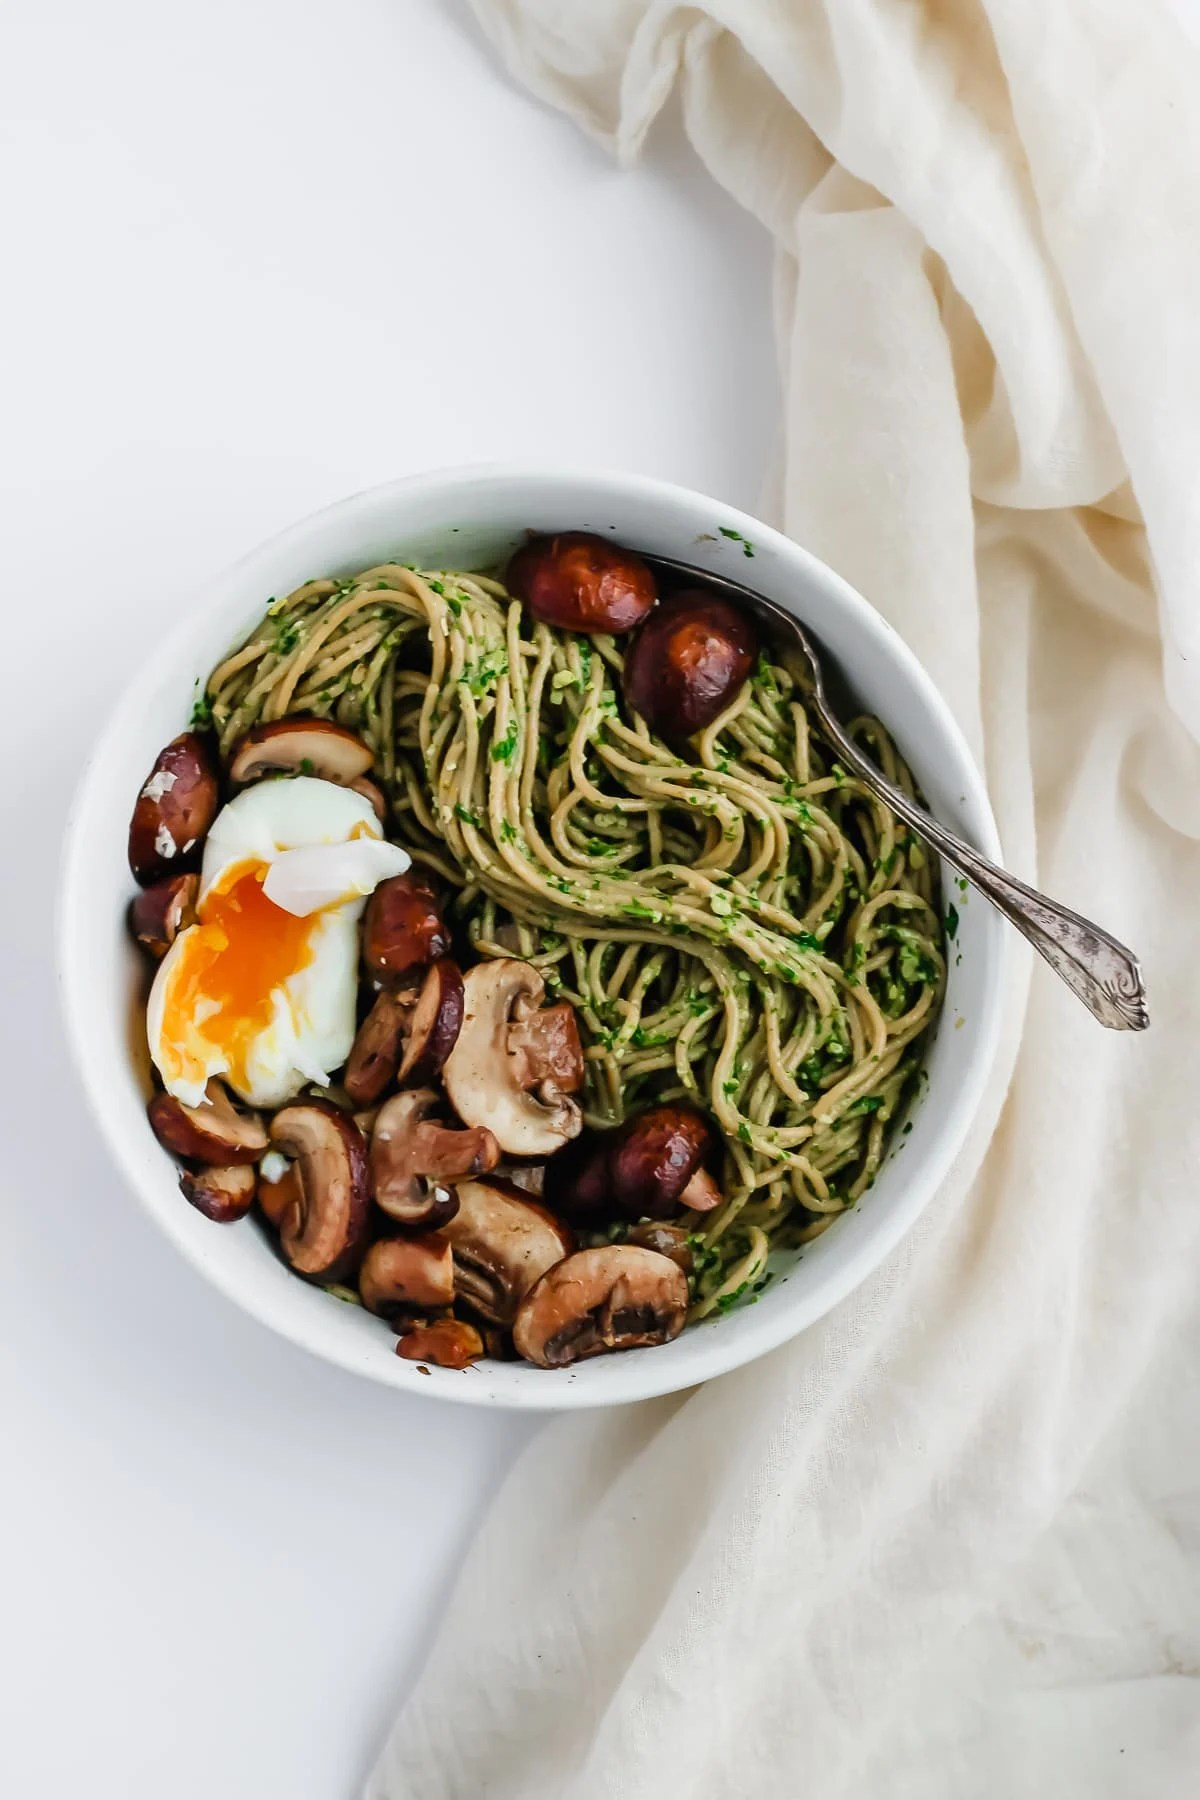 Dairy Free Basil Pesto - a quick, easy and delicious option that is diary-free and whole30 compliant! #whole30 #dairyfree #paleo